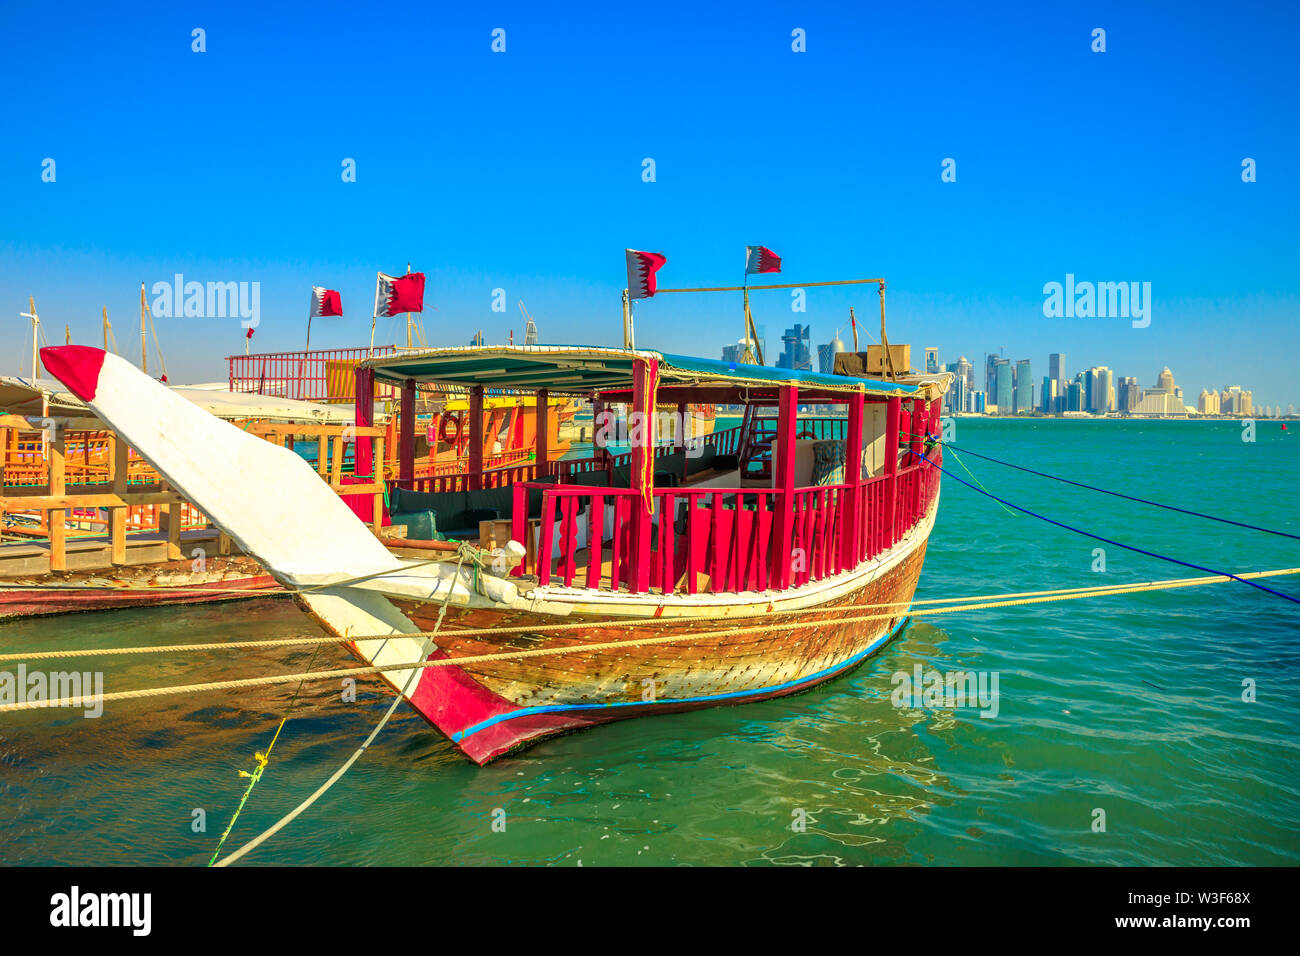 Perspective view of a traditional wooden dhow with qatari flag in foreground with seafront of Doha Bay and skyscrapers of West Bay skyline. Capital of Stock Photo